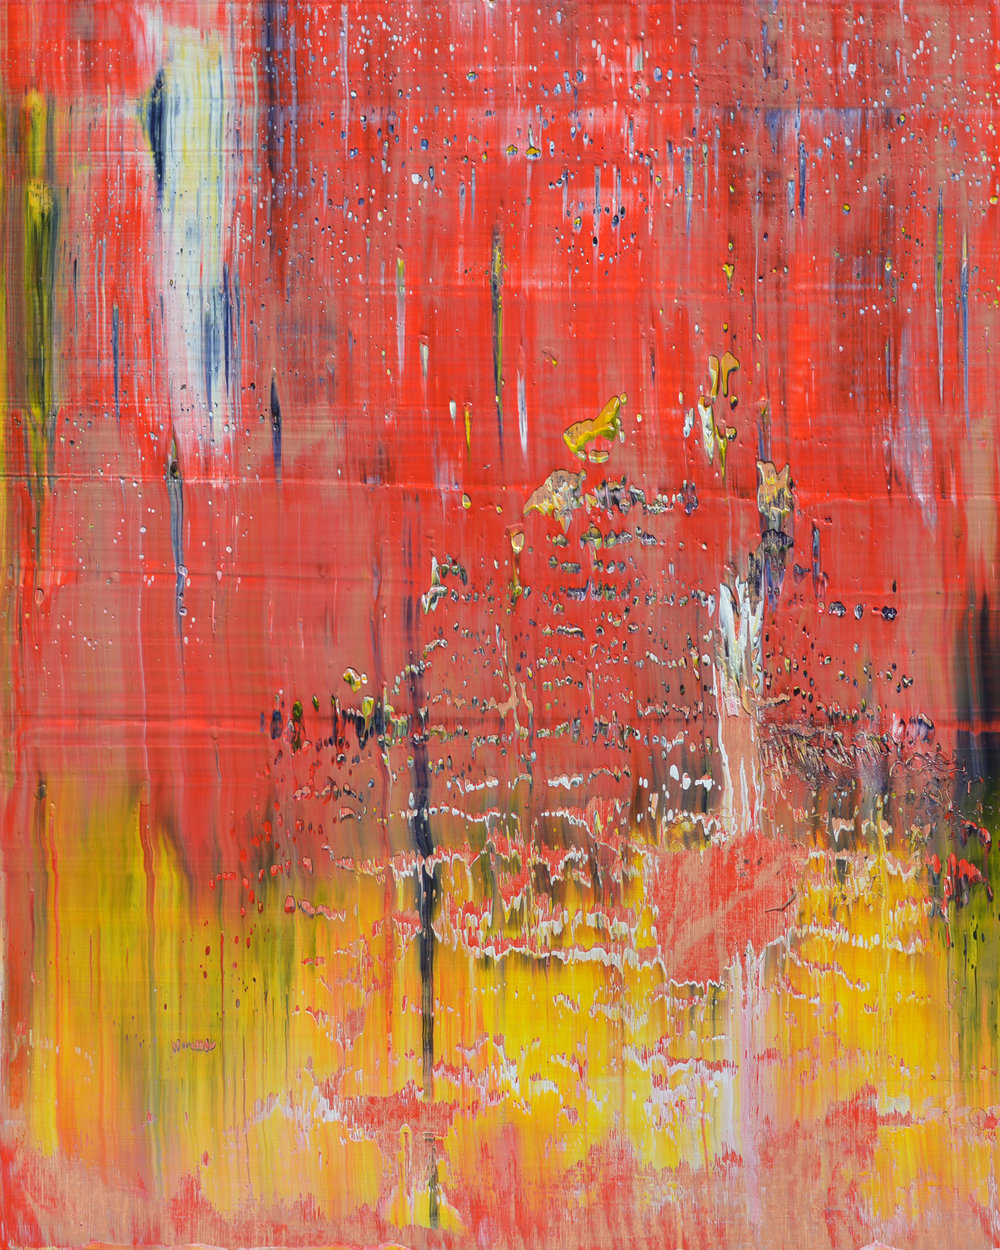 """Close"" is an original, abstract oil painting by Los Angeles based artist, Laura Viapiano."